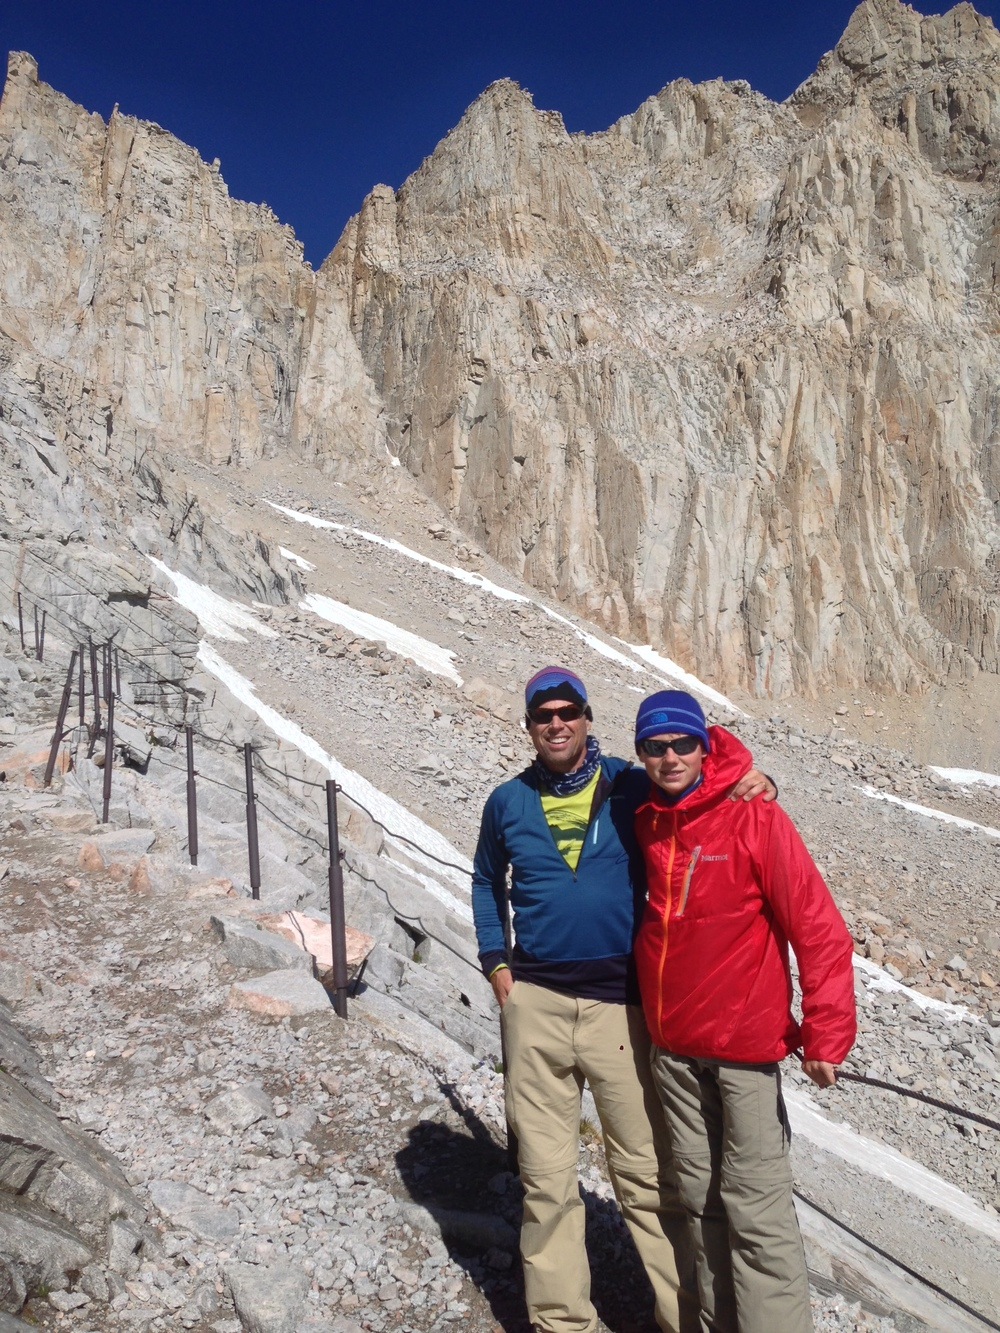 fletcher climbing to the top of Mt. Whitney with his son